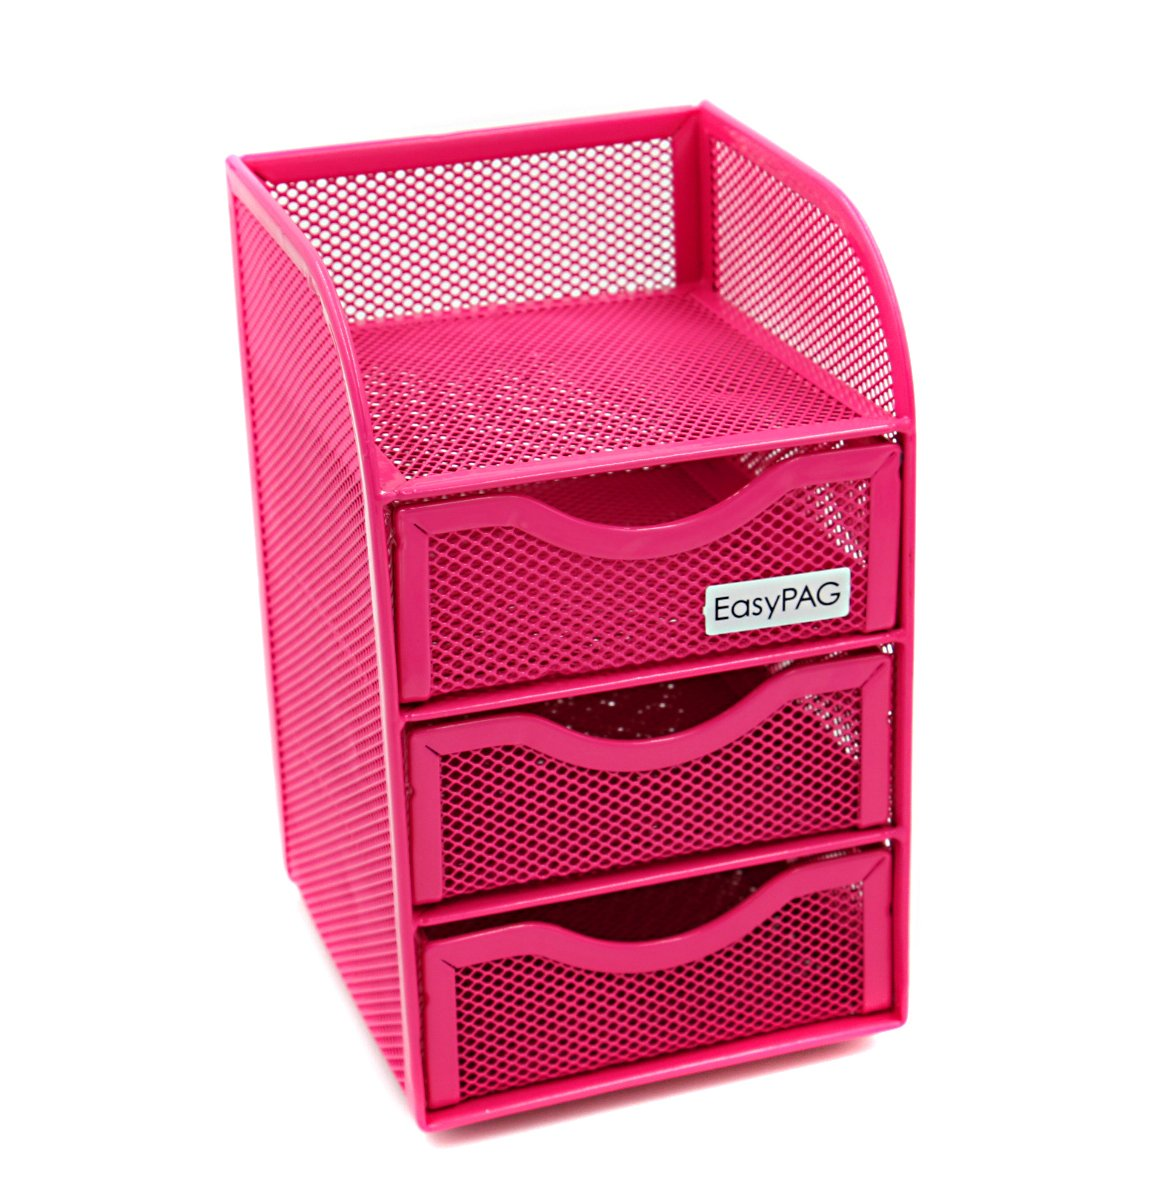 Amazon.com : EasyPAG Mesh Desk Accessorie Organizer 3 Drawer Mini Hutch  Office Supplies Caddy, Pink : Office Products